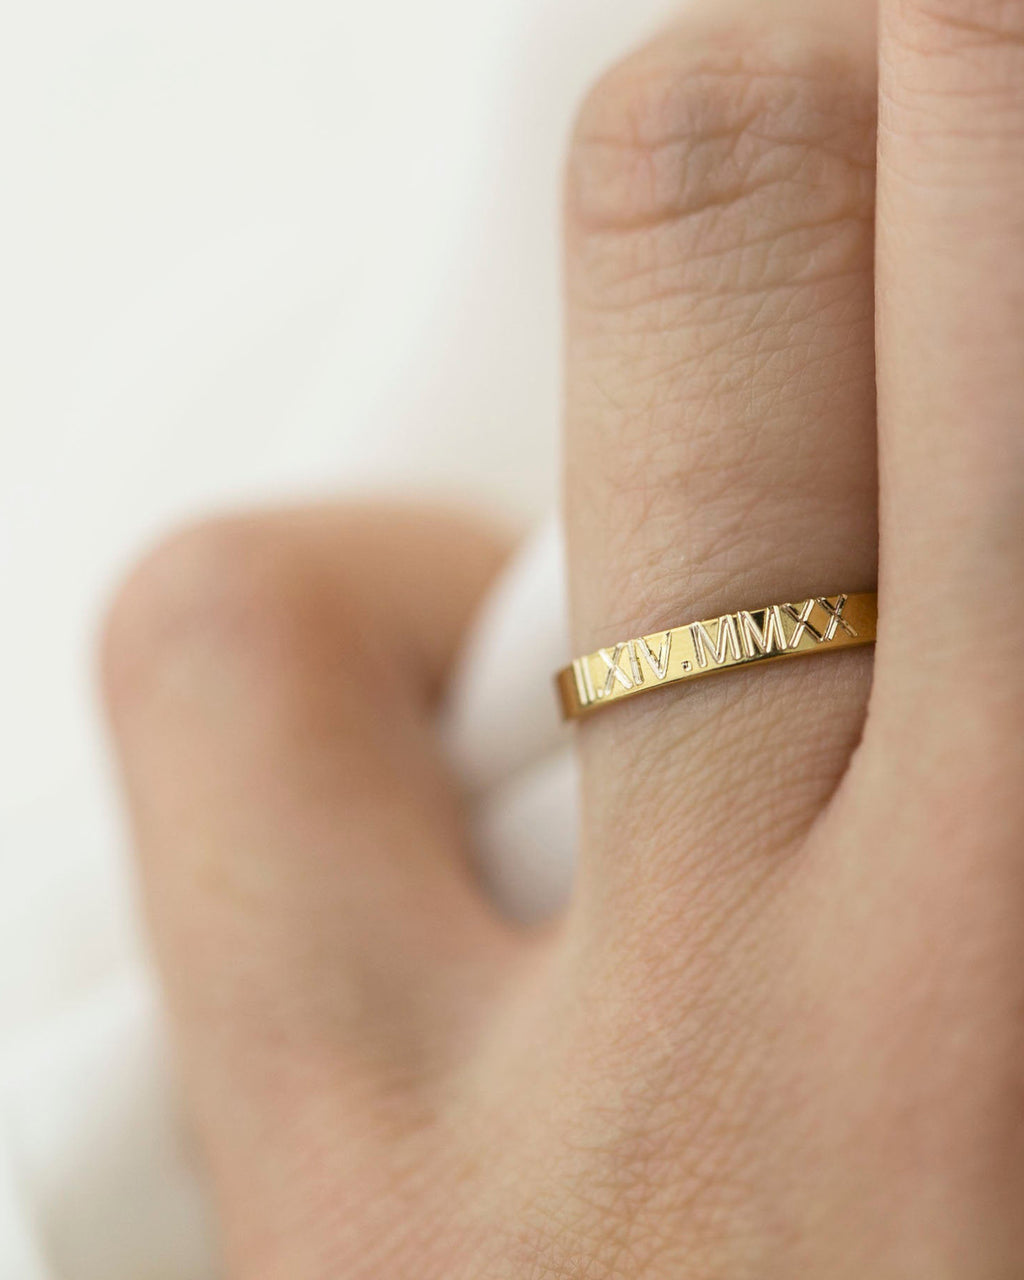 Roman Numeral Date Ring